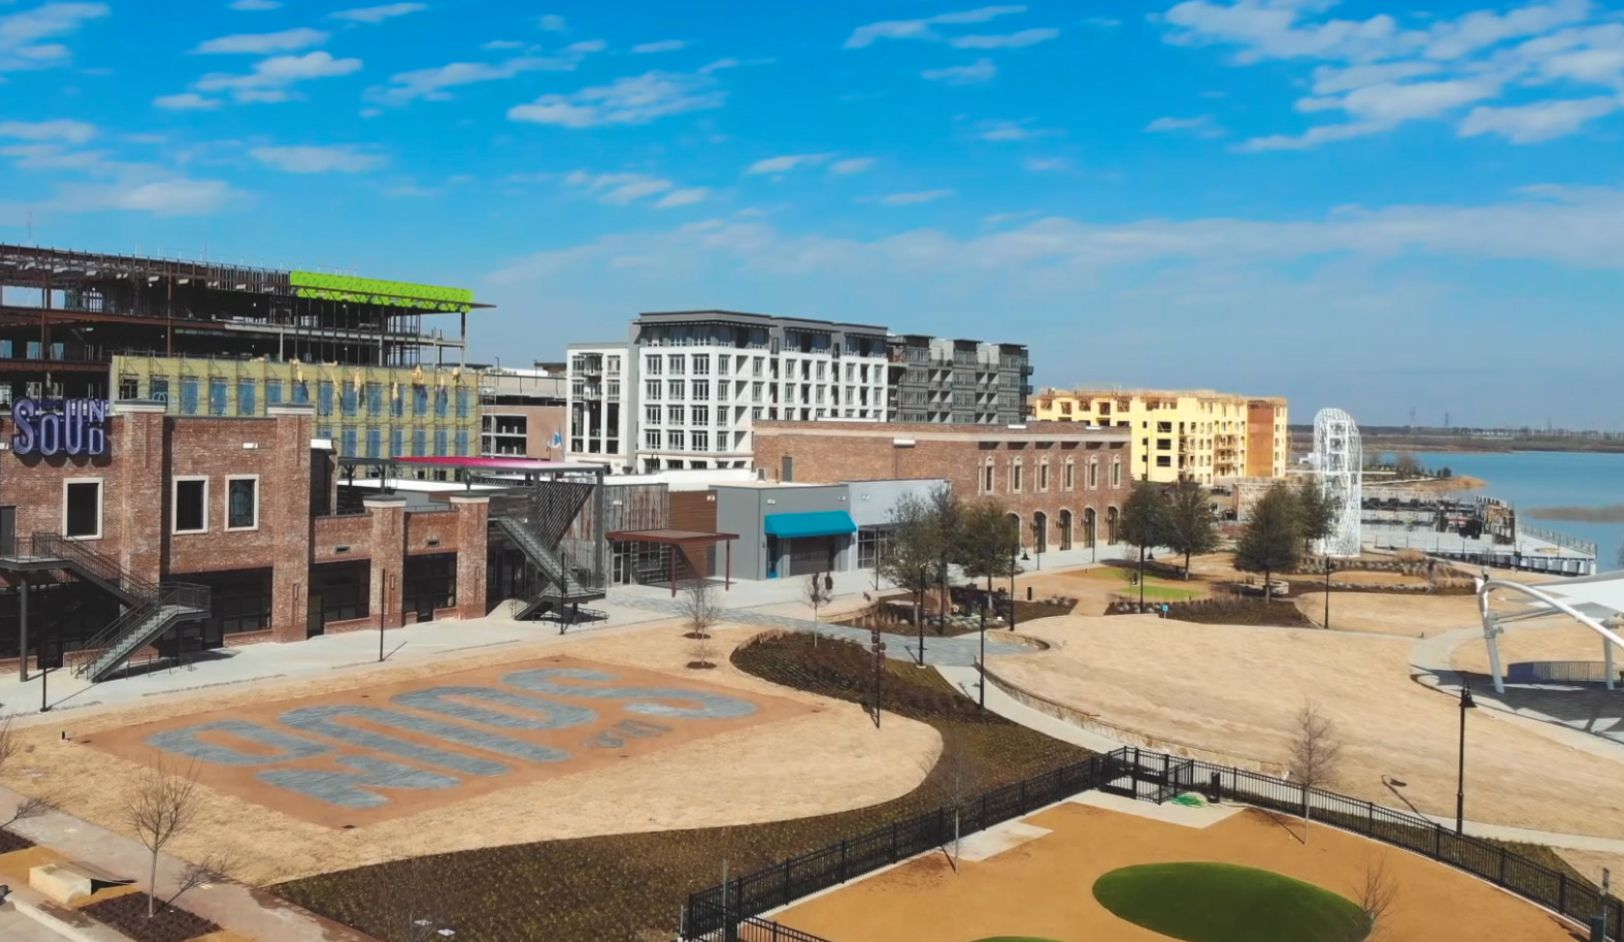 The Sound retail village is the new dining and shopping destination in the 1,000-acre Cypress Waters development.